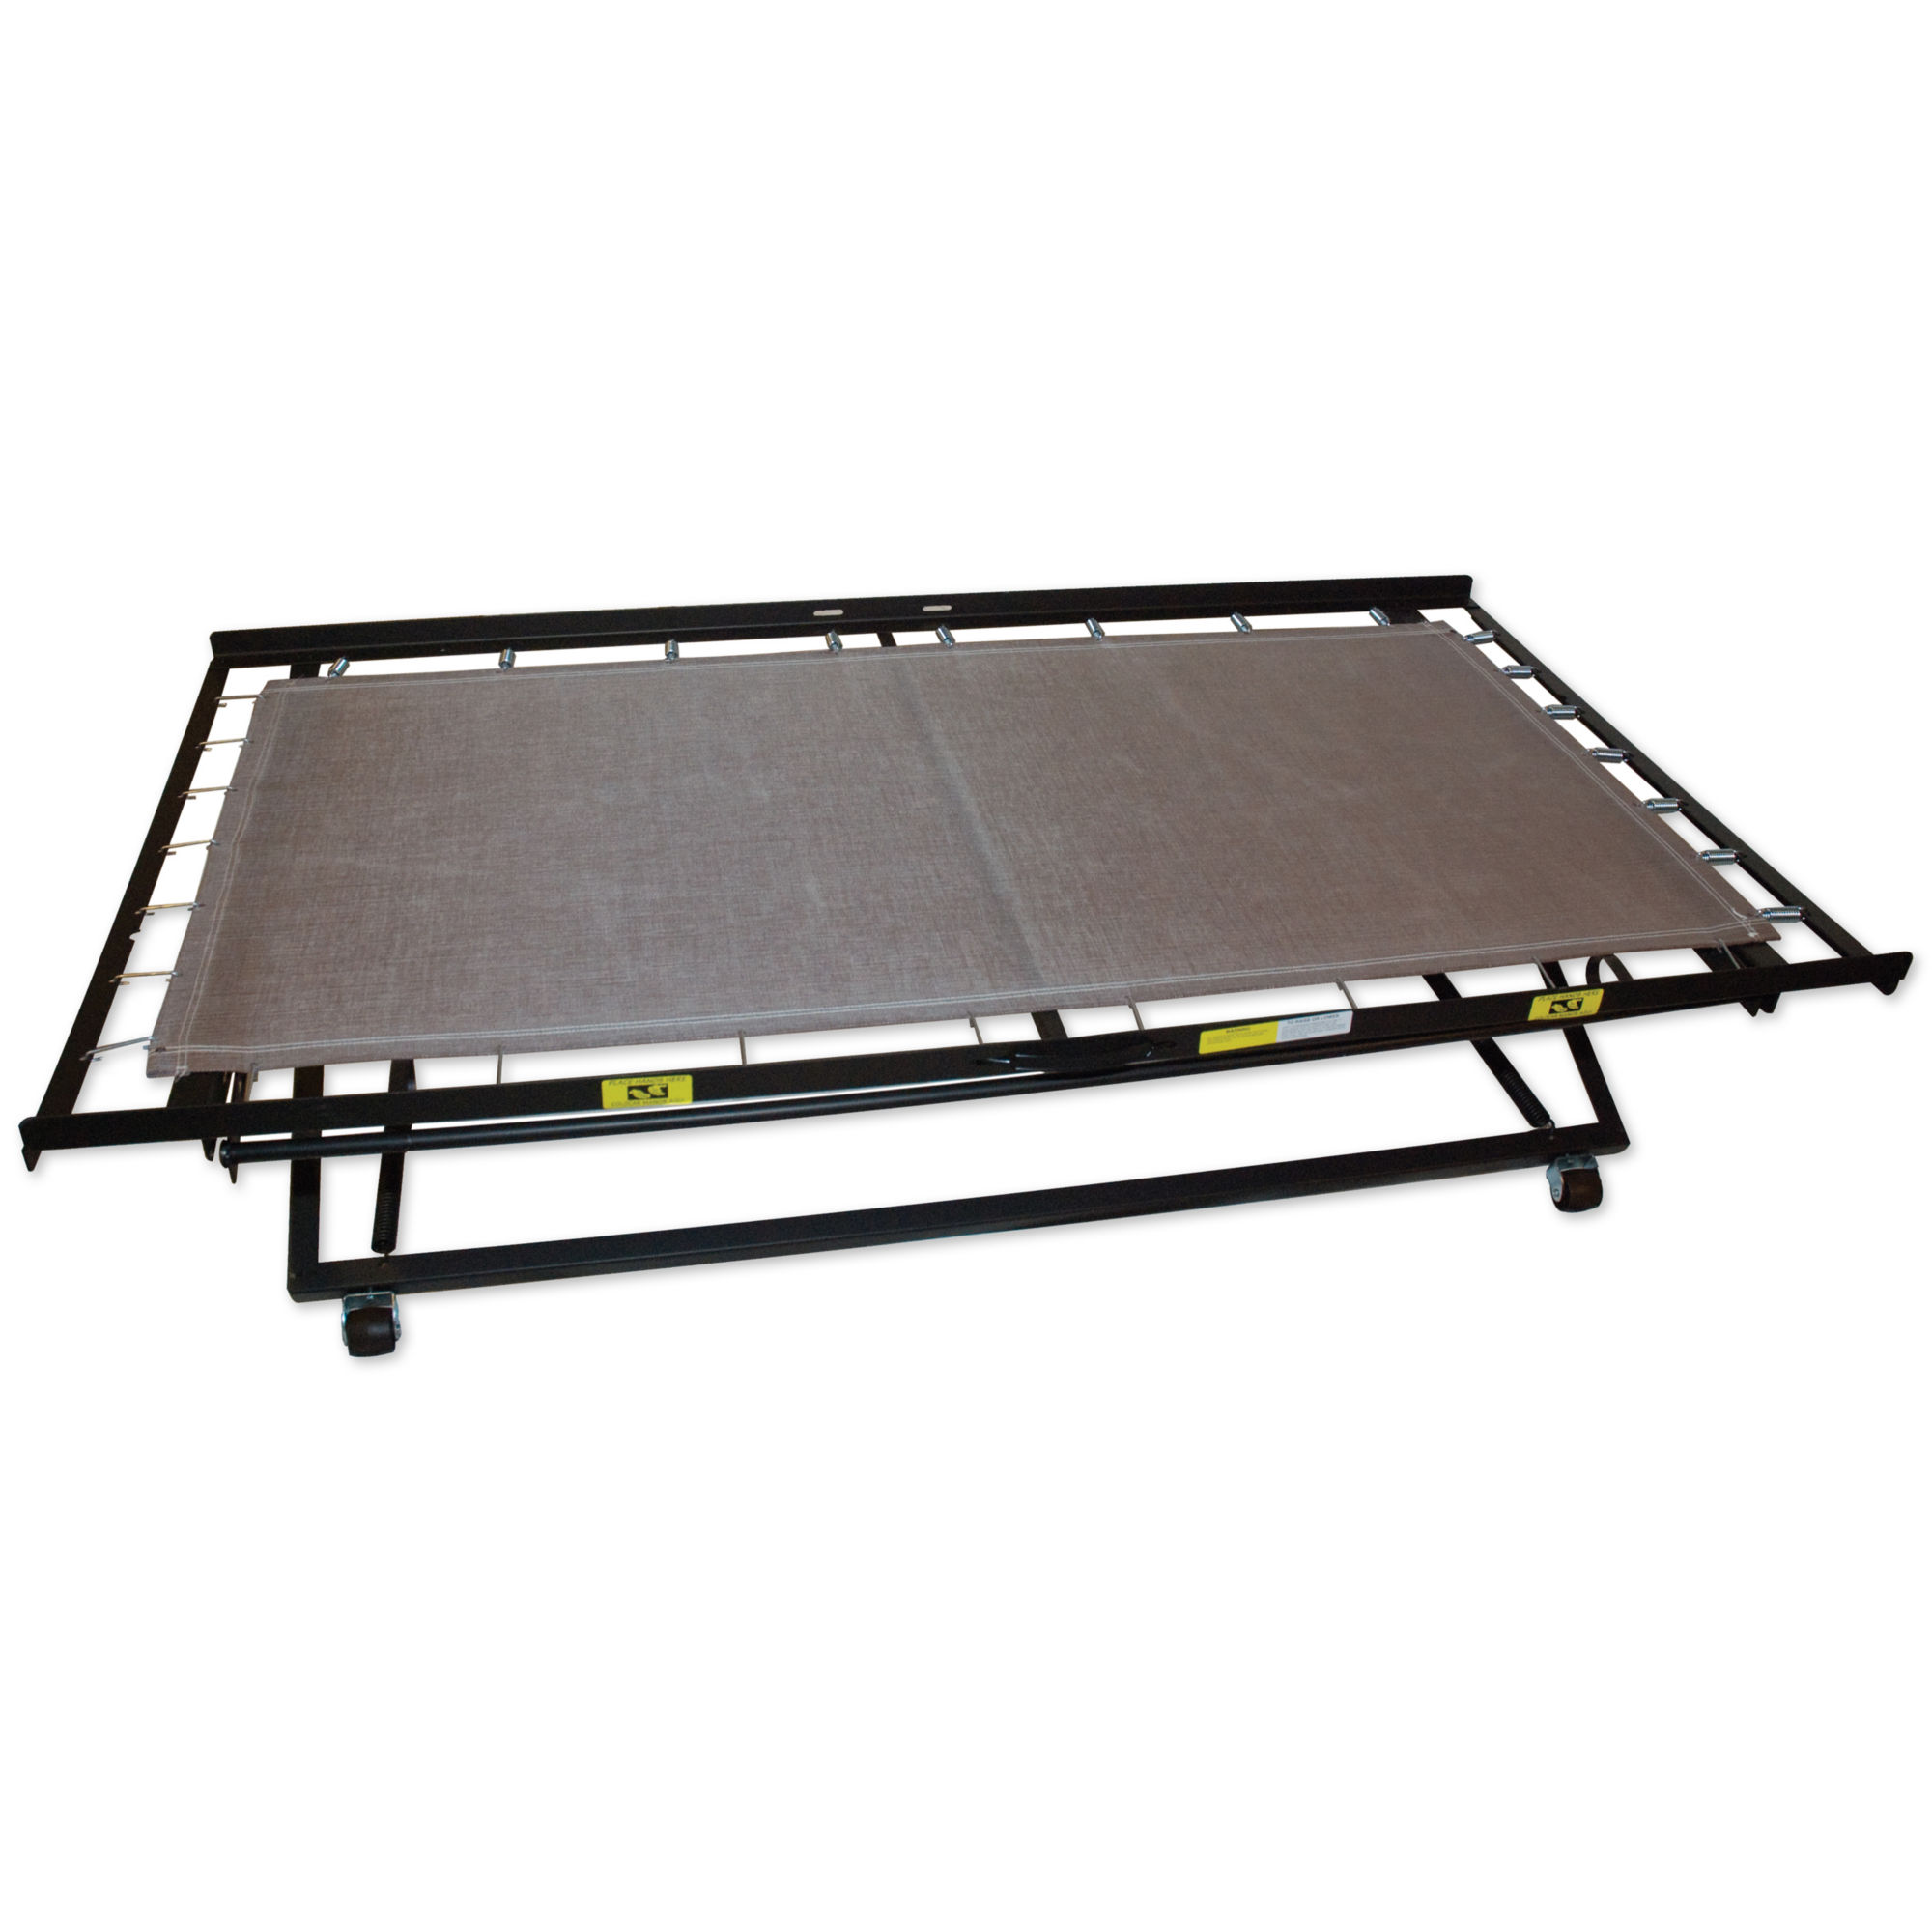 33'' Steel High Riser Day Bed Frame & Pop Up Trundle. Spanish Floor Tiles. Traditional Coffee Tables. Deep Sofa. Cool Chairs. Red Curtains Living Room. Corner Bakers Rack. Crate And Barrel Tysons. Yakisugi